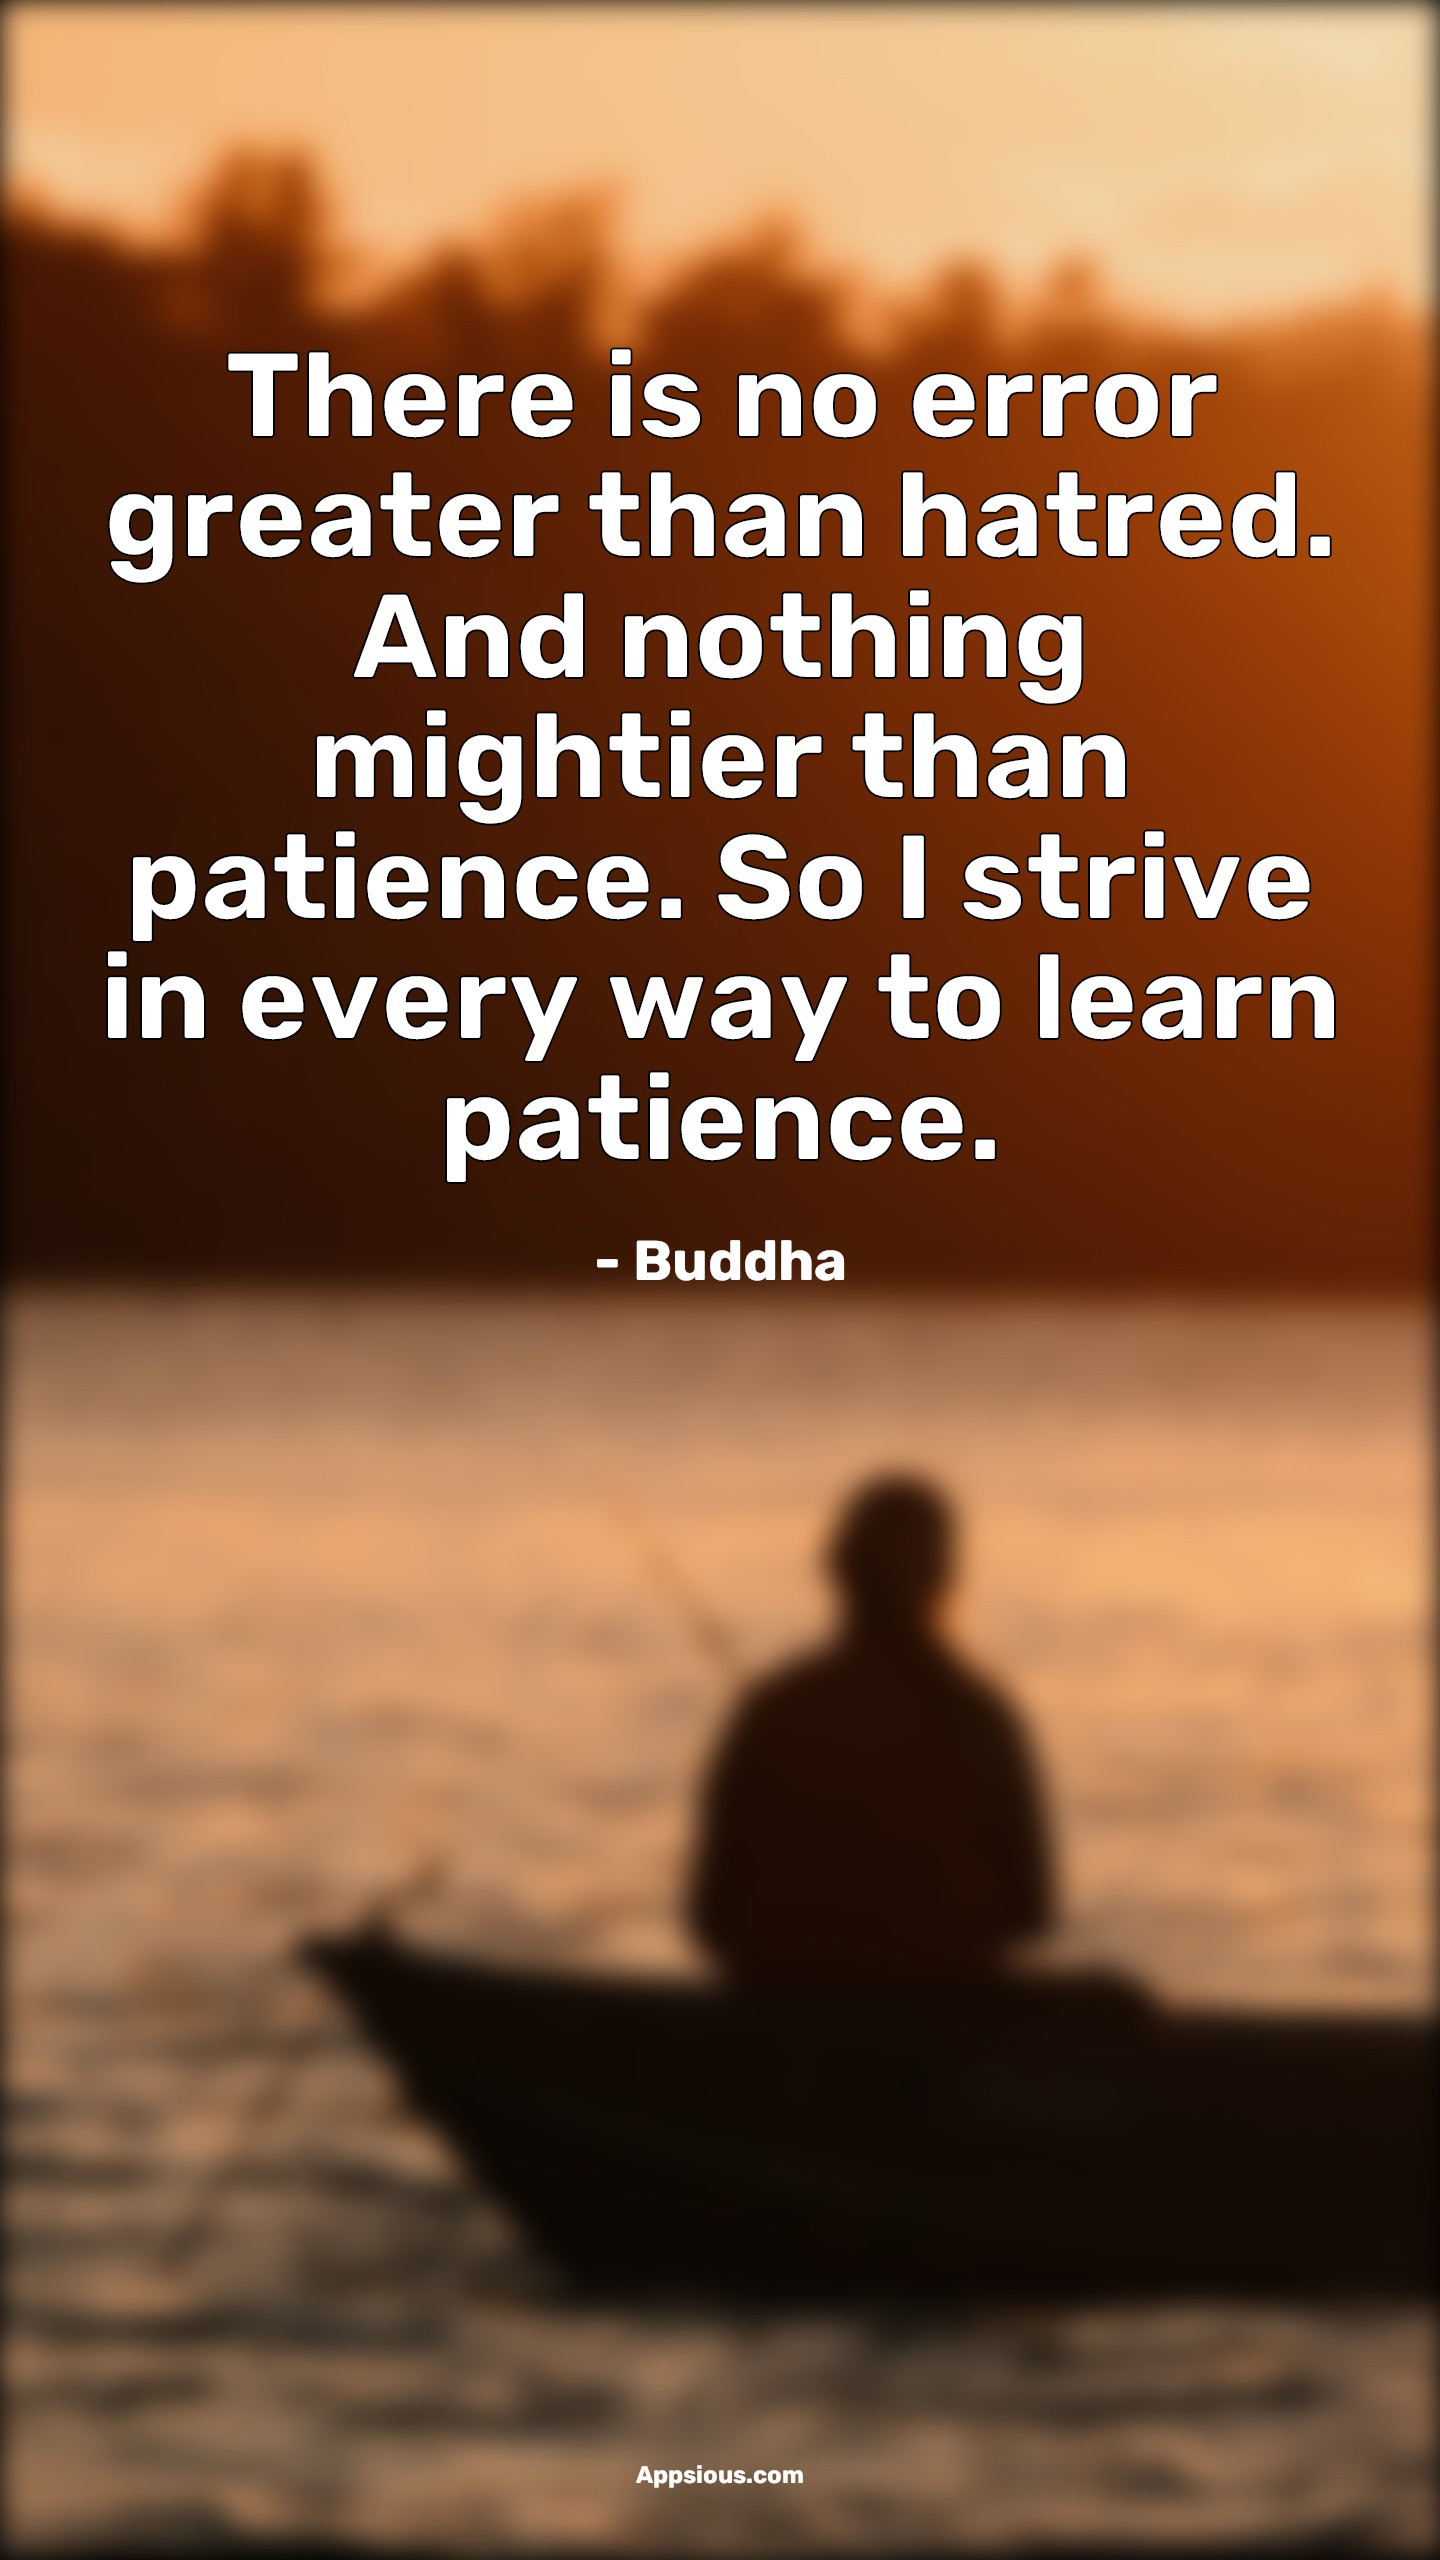 There is no error greater than hatred. And nothing mightier than patience. So I strive in every way to learn patience.